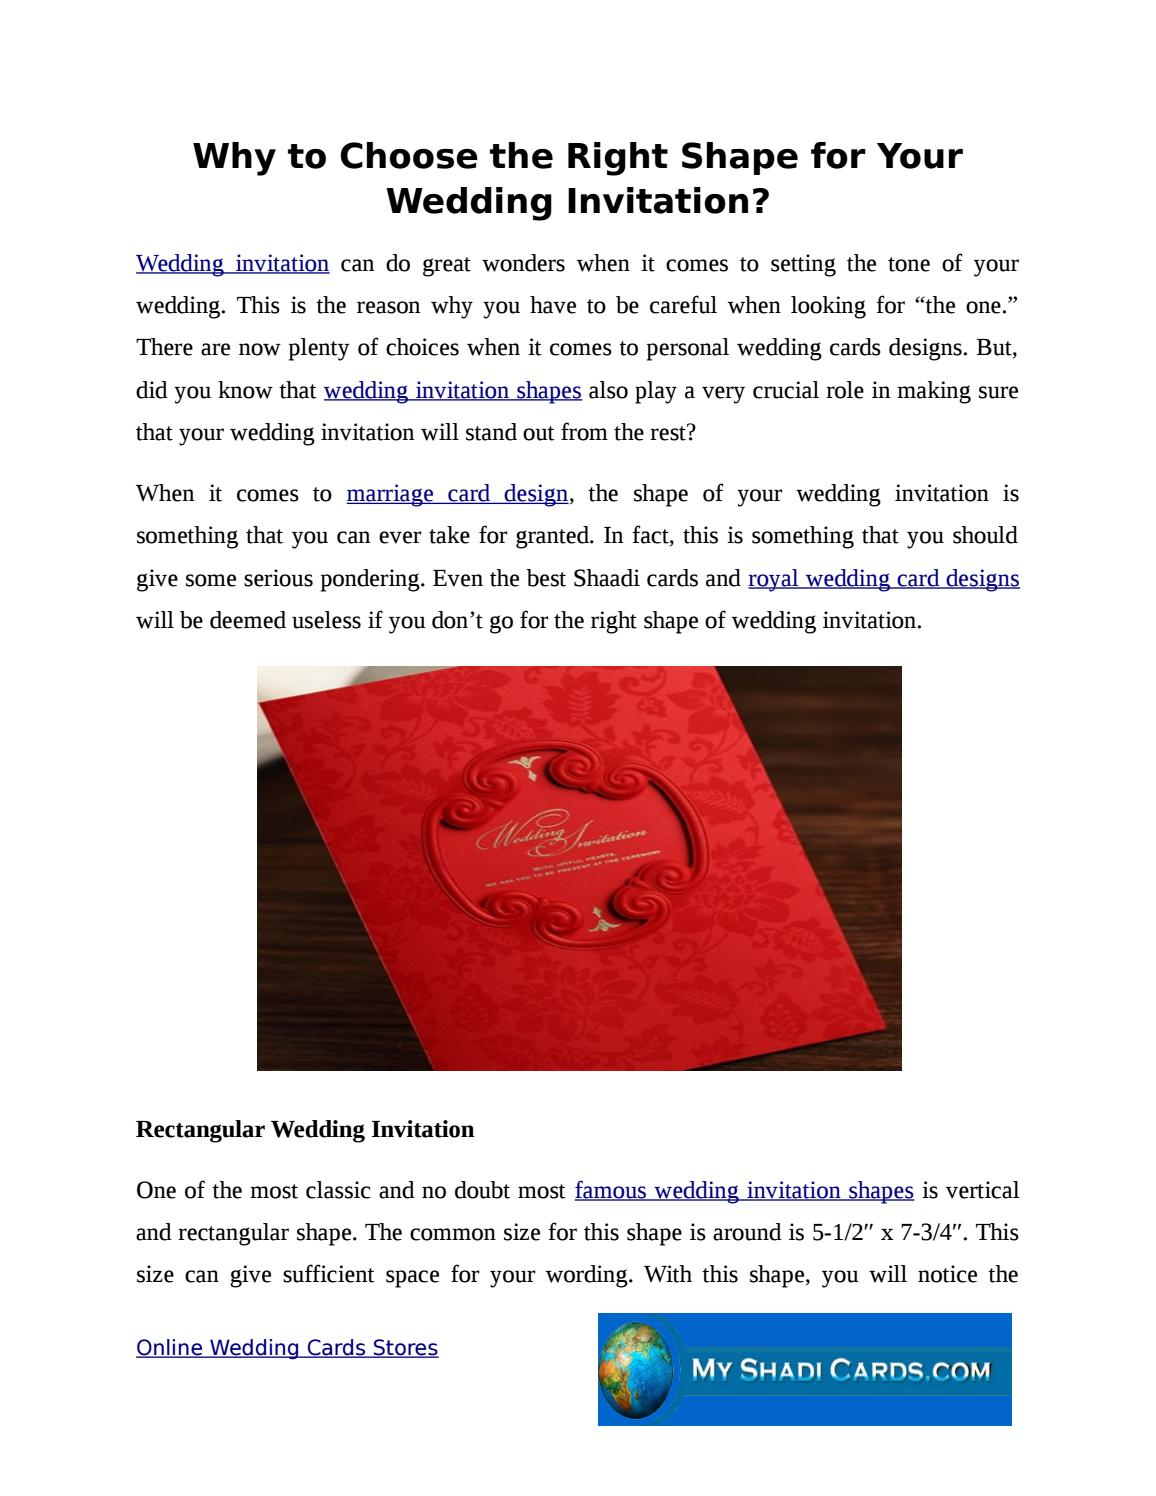 Why to choose the right shape for your wedding invitation by ...